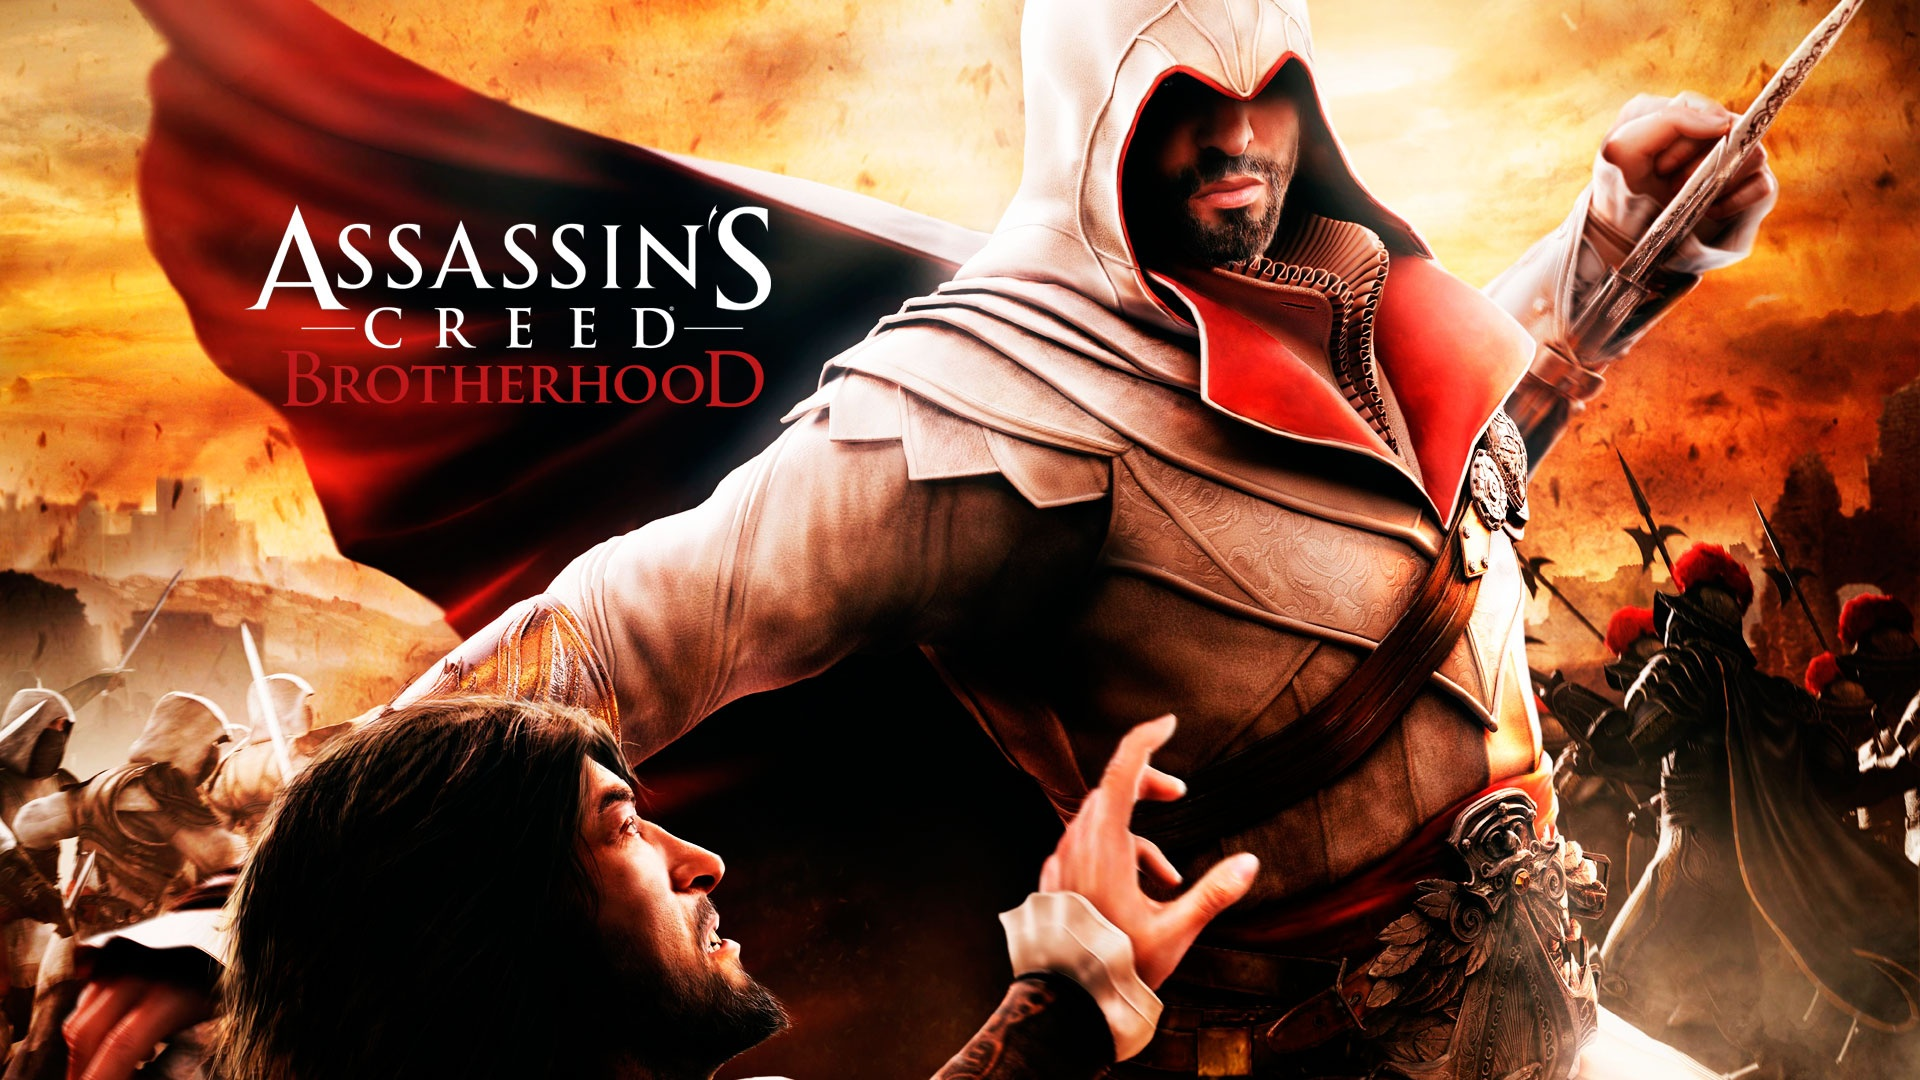 Assassin's Creed: Brotherhood Wallpapers, Pictures, Images